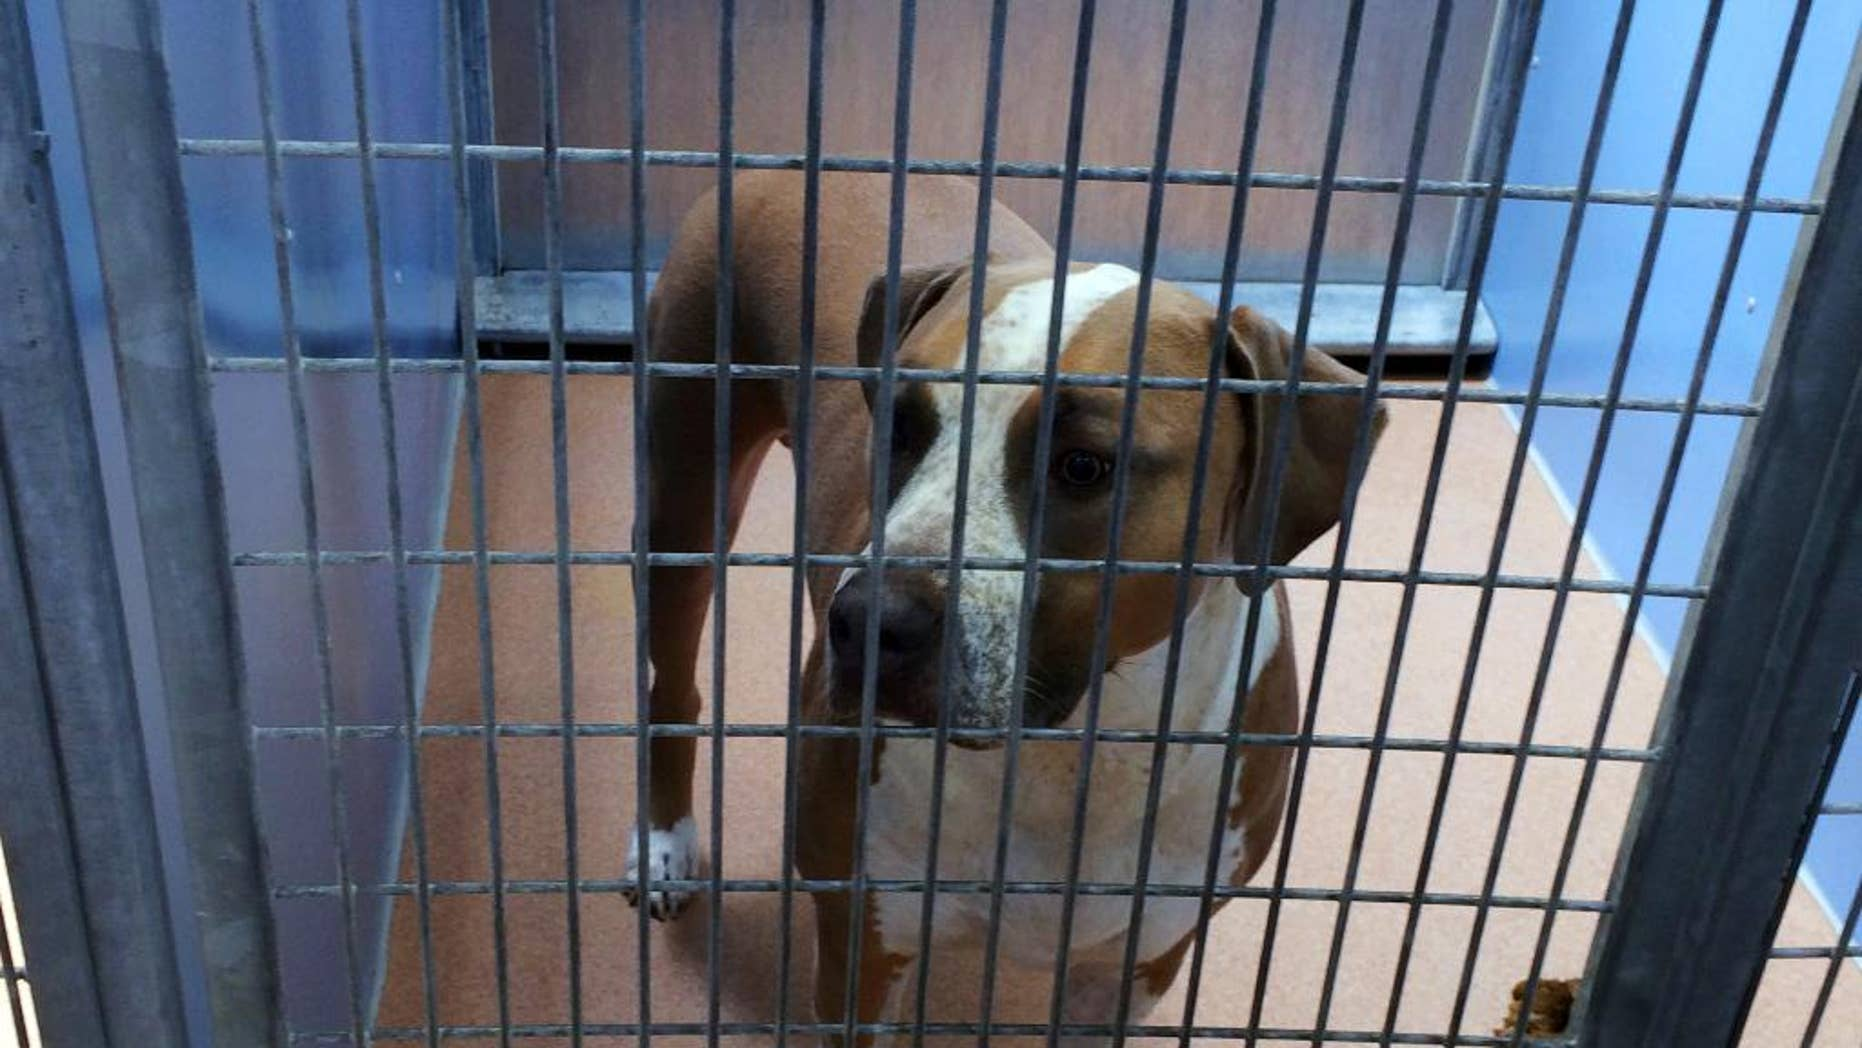 This photo provided by the San Diego County Department of Animal Services shows a male American Staffordshire terrier-mix named Polo, in their custody after it mauled to death a 3-day-old boy, police said Friday, April 22, 2016. The parents were in bed watching TV with their newborn son and dog Thursday night when the mother coughed. The coughing startled the dog and it unexpectedly bit the baby, Sgt. Tu Nguyen said. (San Diego County Department of Animal Services via AP)